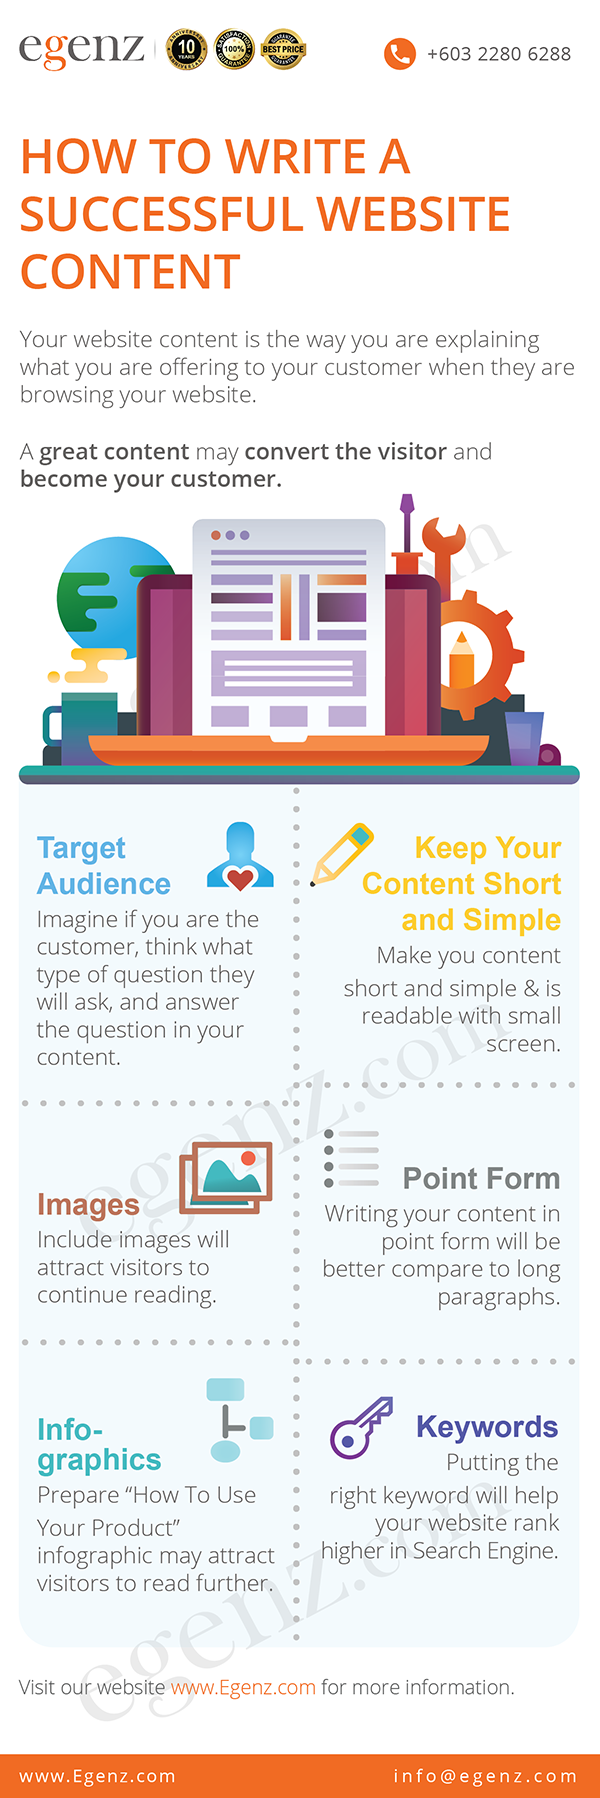 Infographic-How-to-write-a-successful-website-content